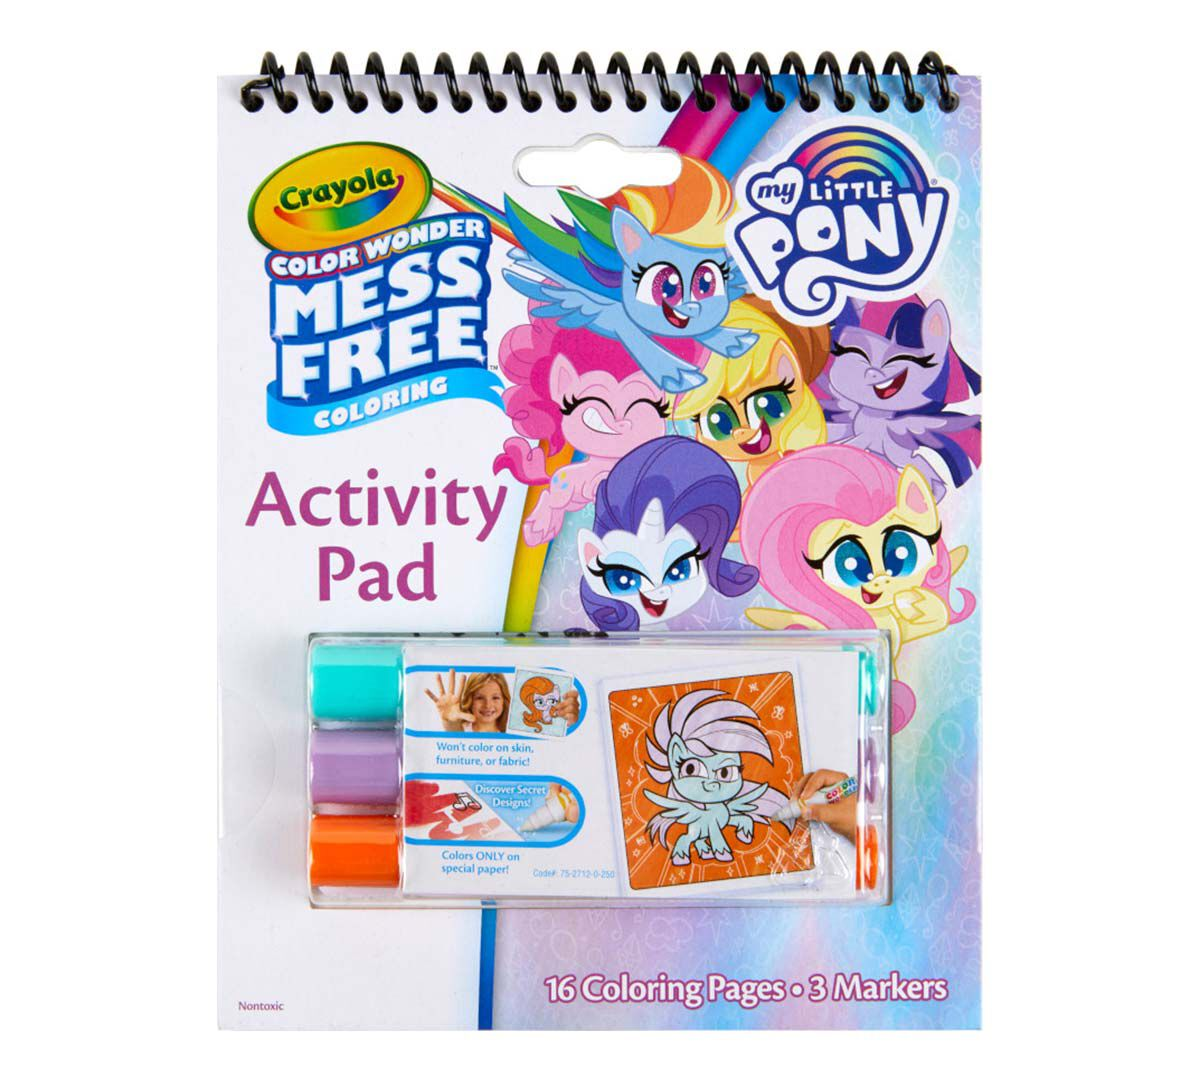 Color Wonder Mess Free My Little Pony Book Crayola.com Crayola